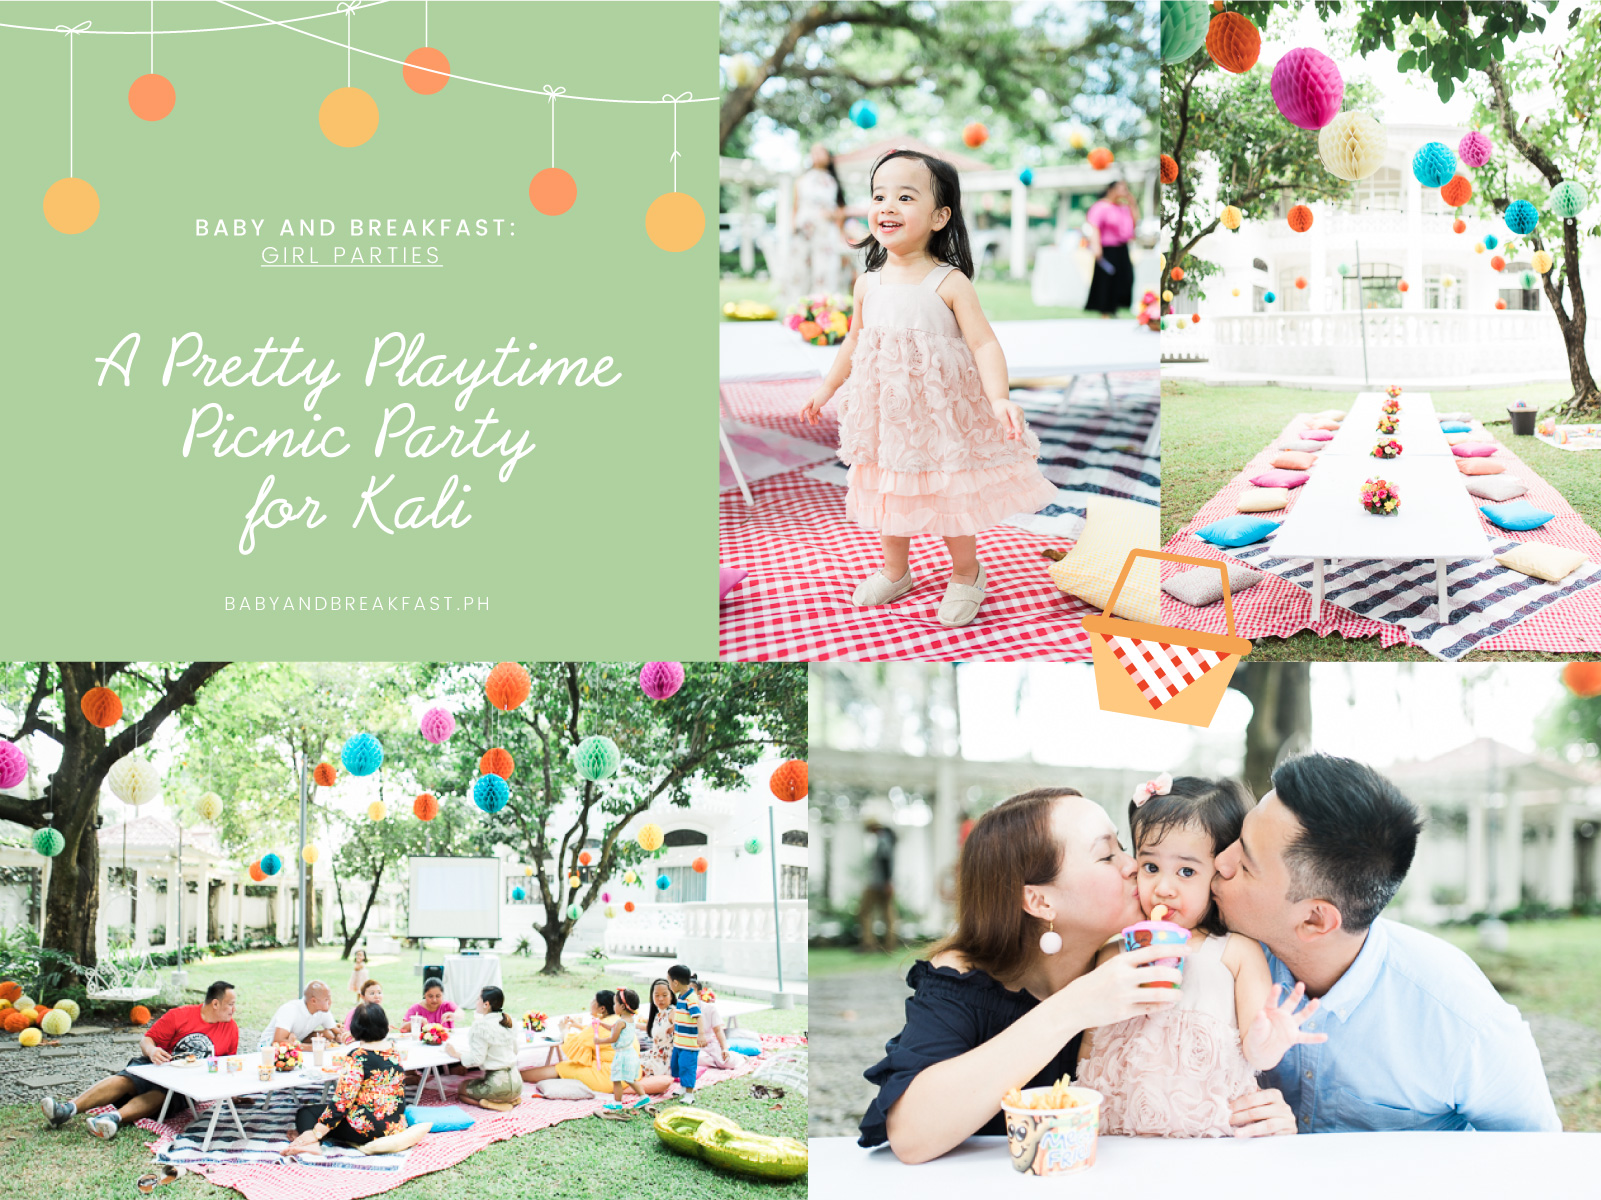 Baby and Breakfast: Girl Parties A Pretty Playtime Picnic Party for Kali